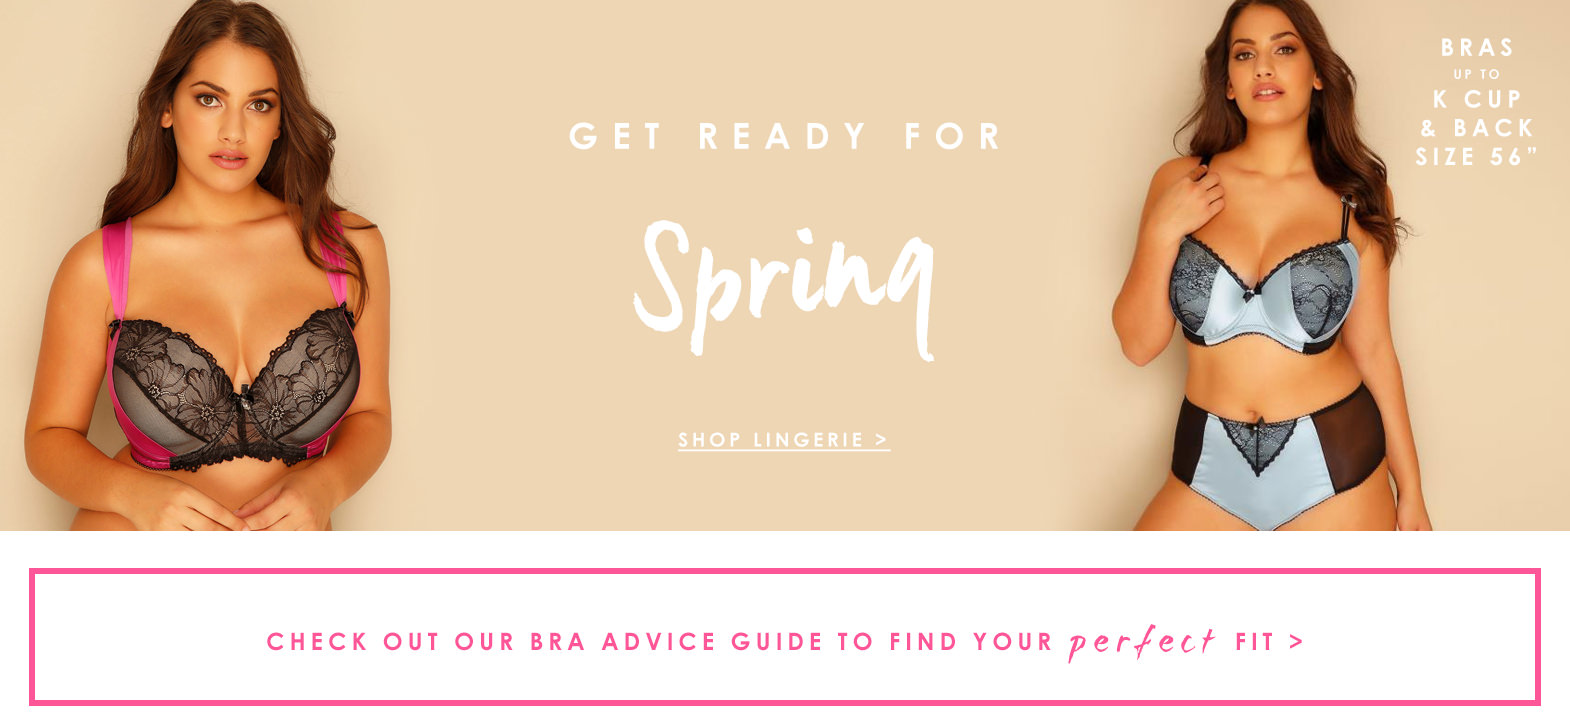 Get ready for spring, shop lingerie >